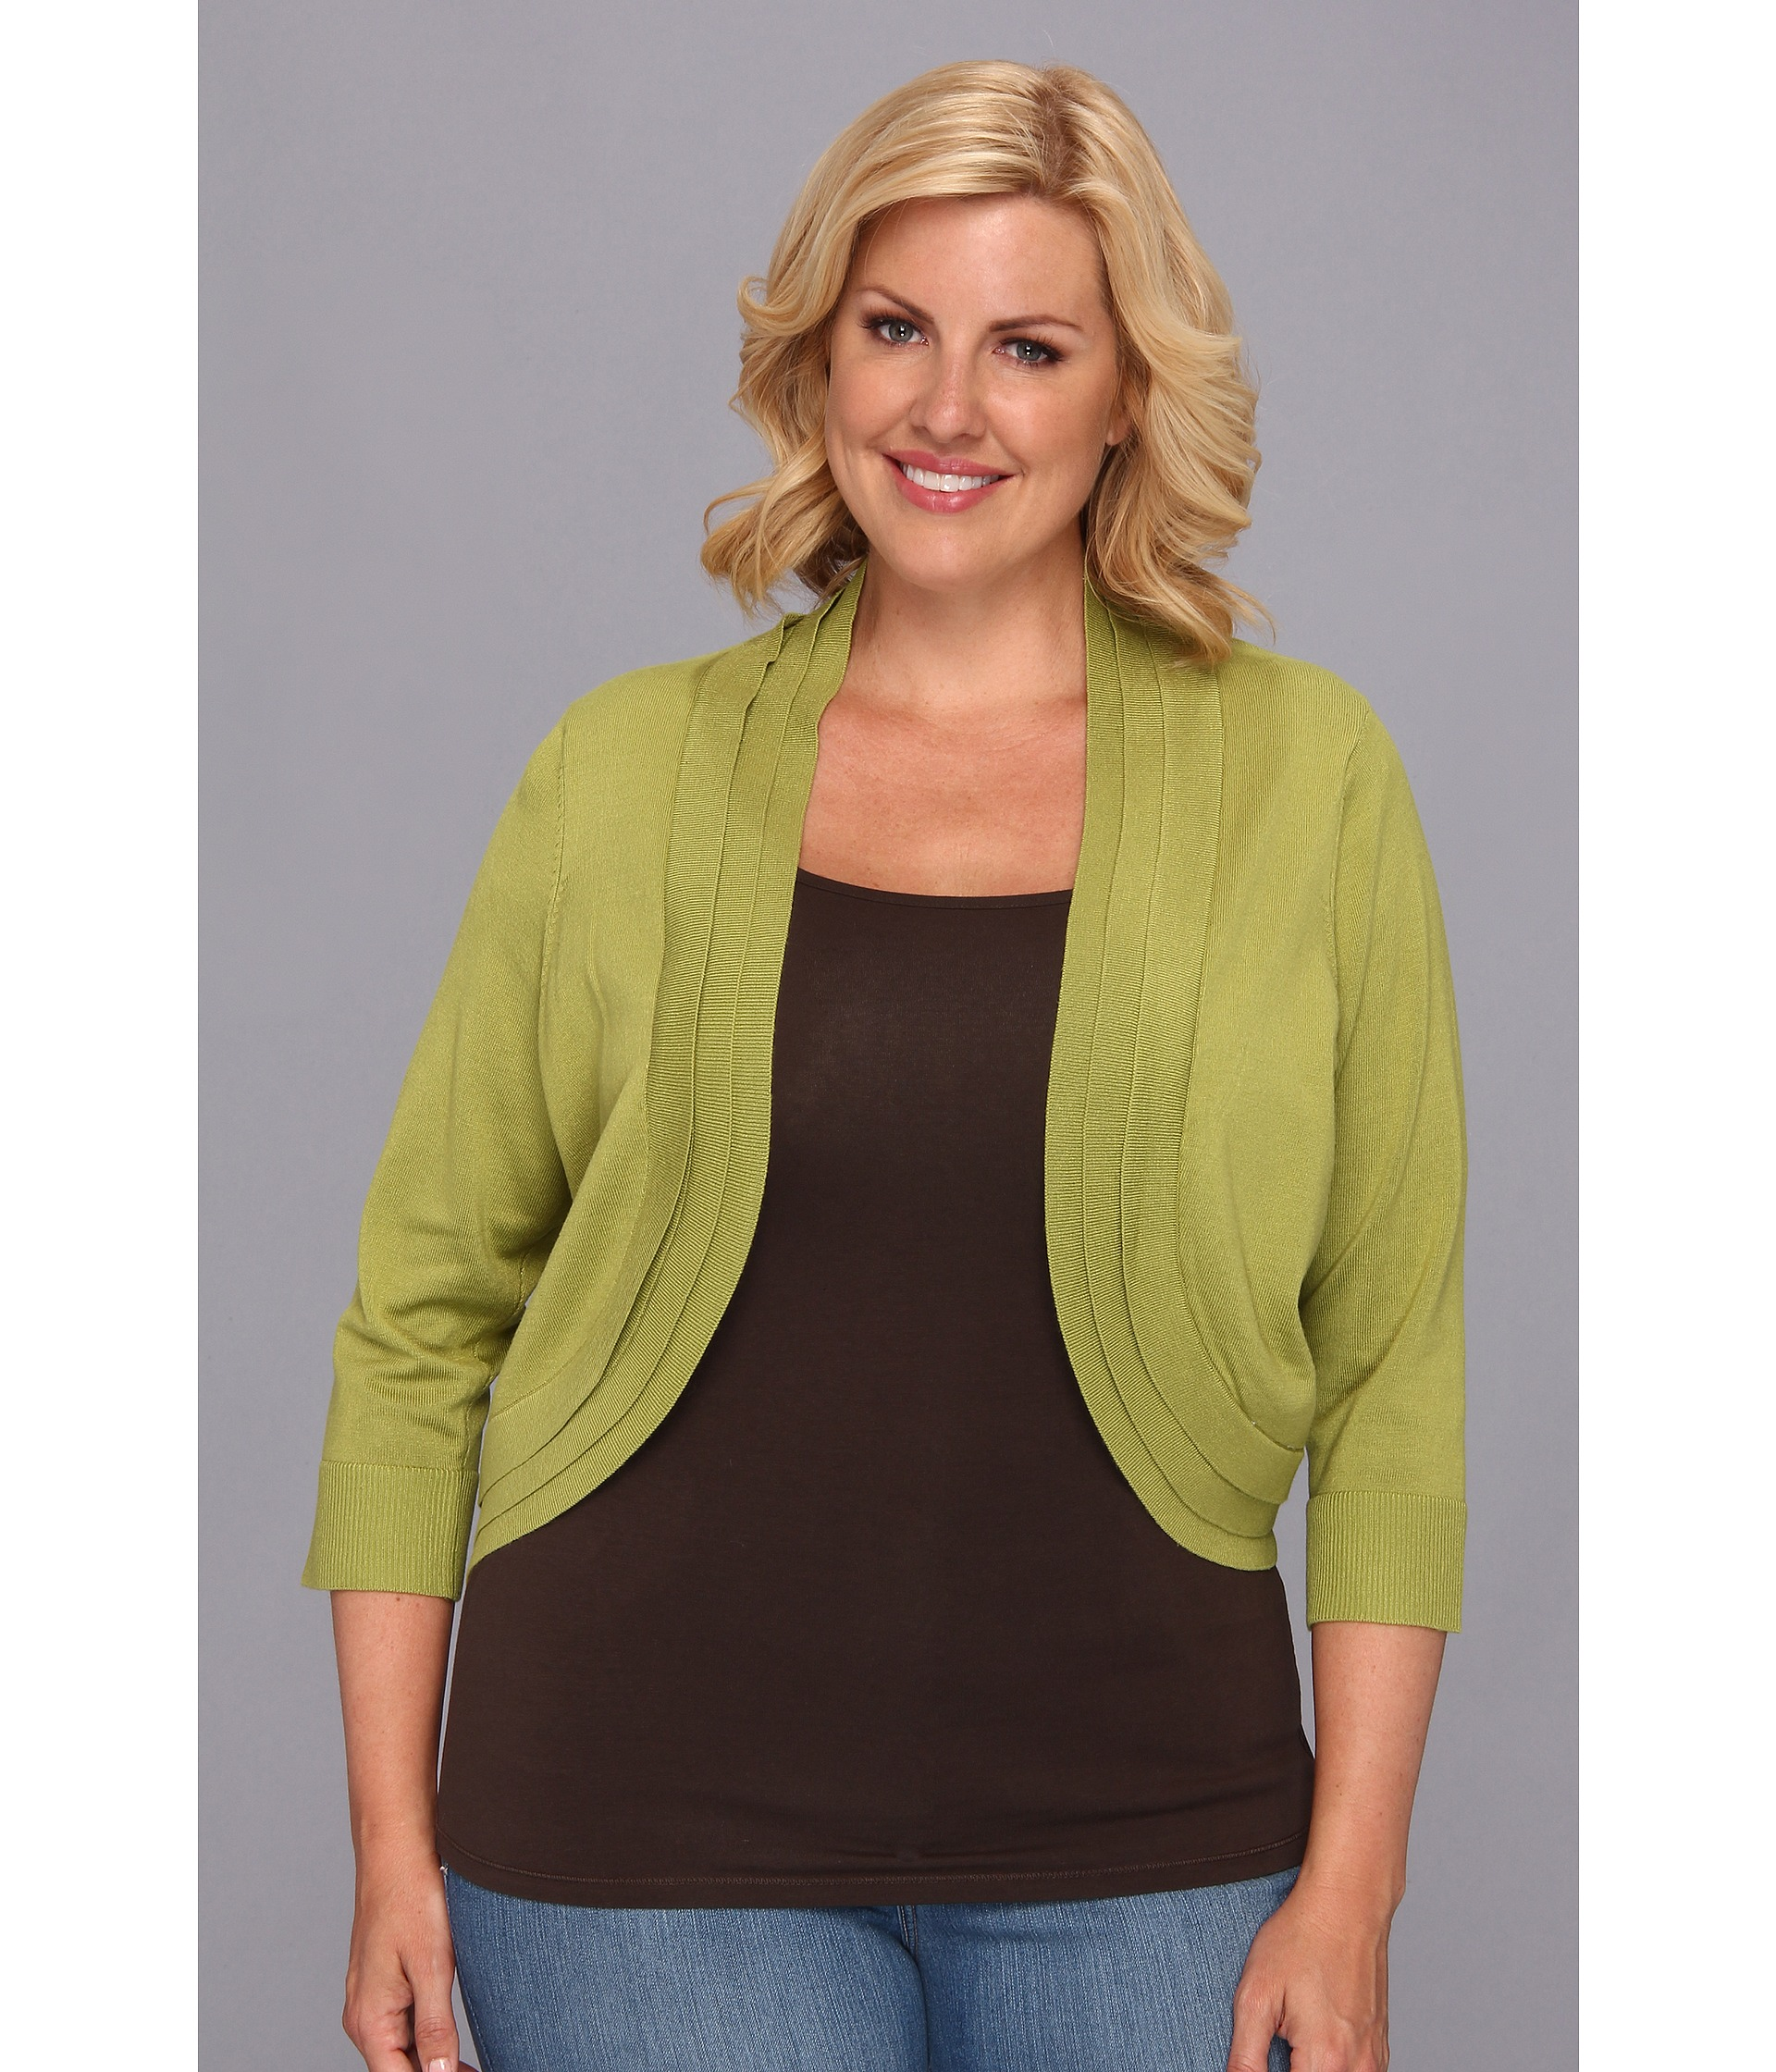 Plus Size Shrugs For Dresses - HD Photos Gallery